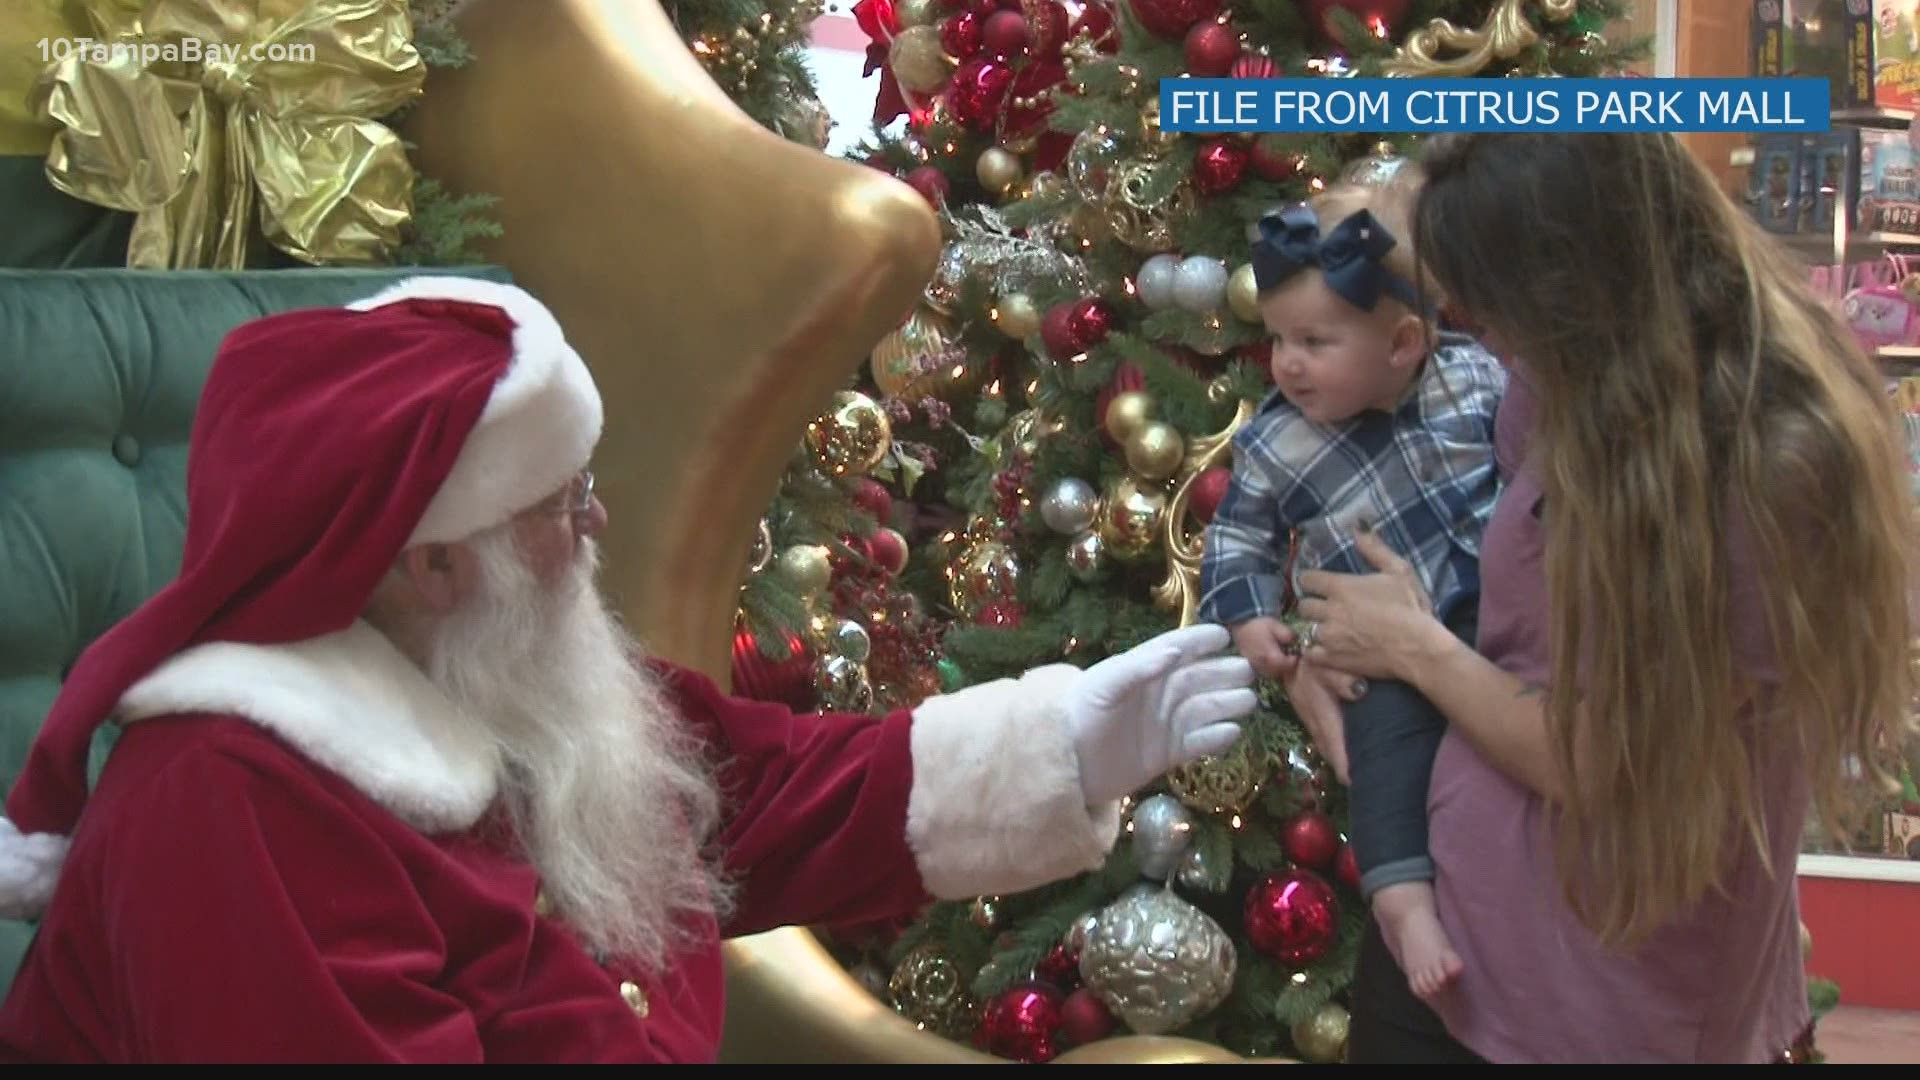 Tyrone Mall Christmas Day 2021 How To See Santa Claus Around Tampa Bay Malls In 2020 Wtsp Com